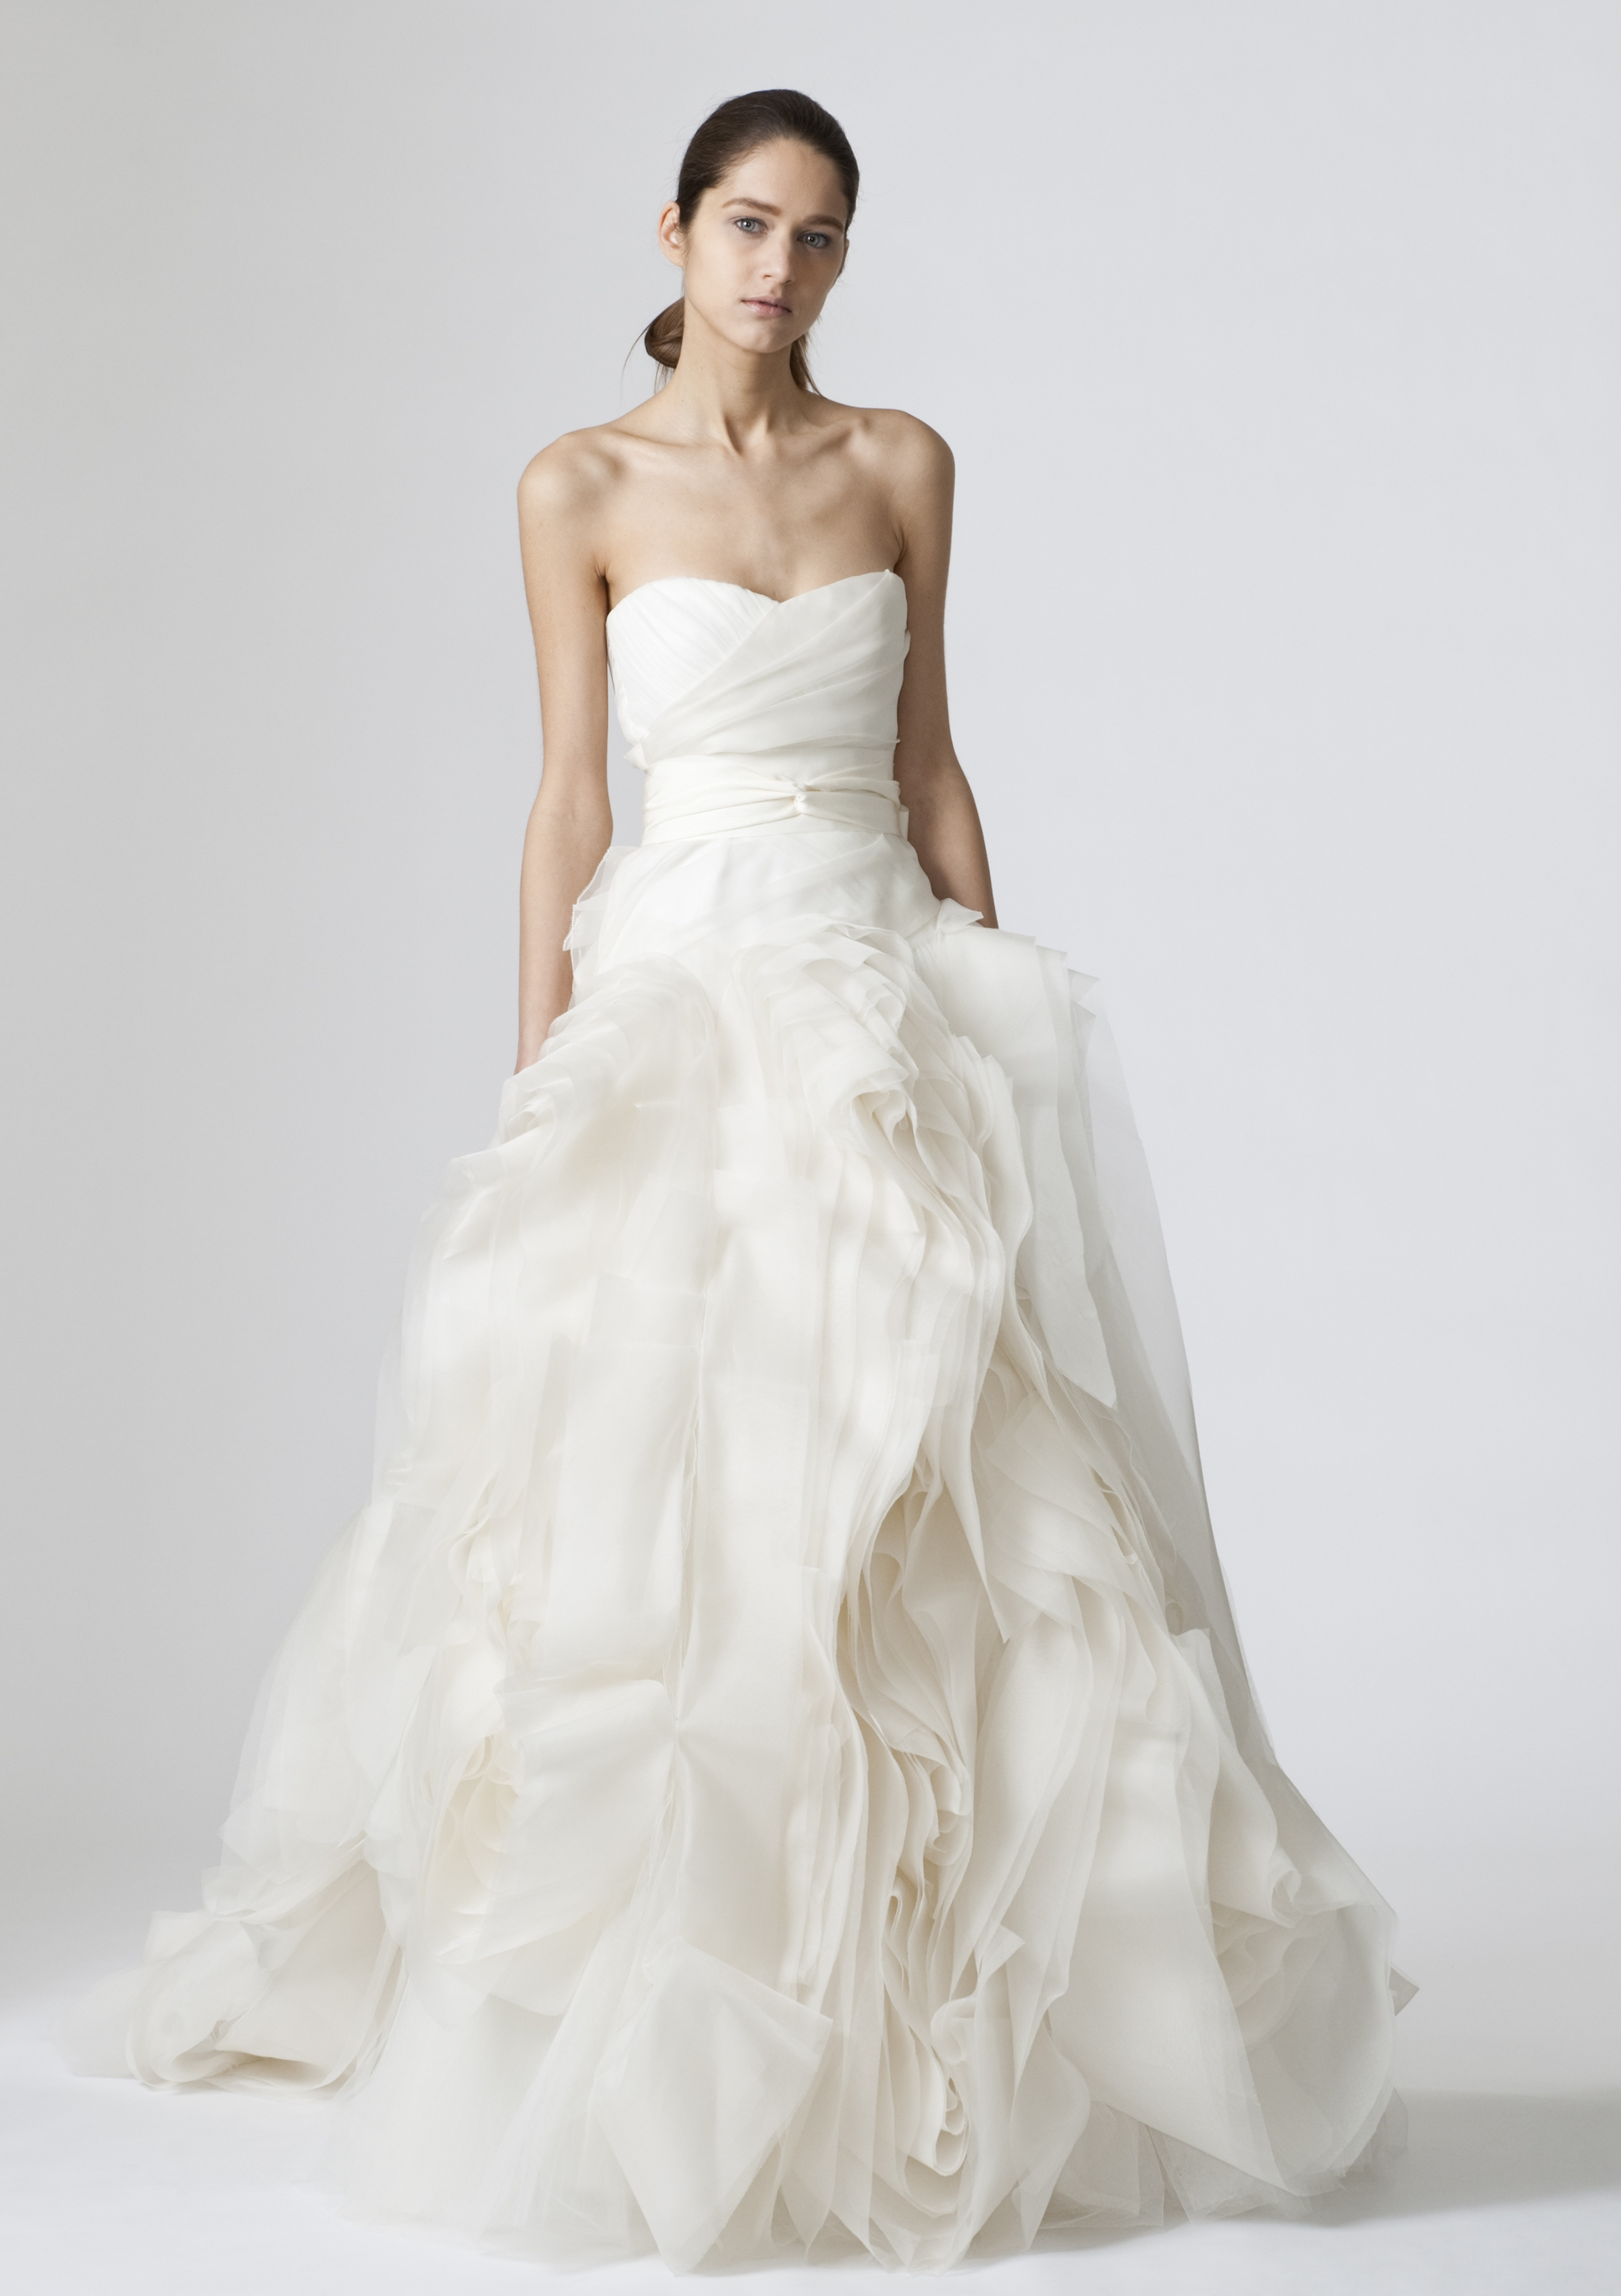 Vera wang petite wedding dresses cheap wedding dresses for Affordable vera wang wedding dresses